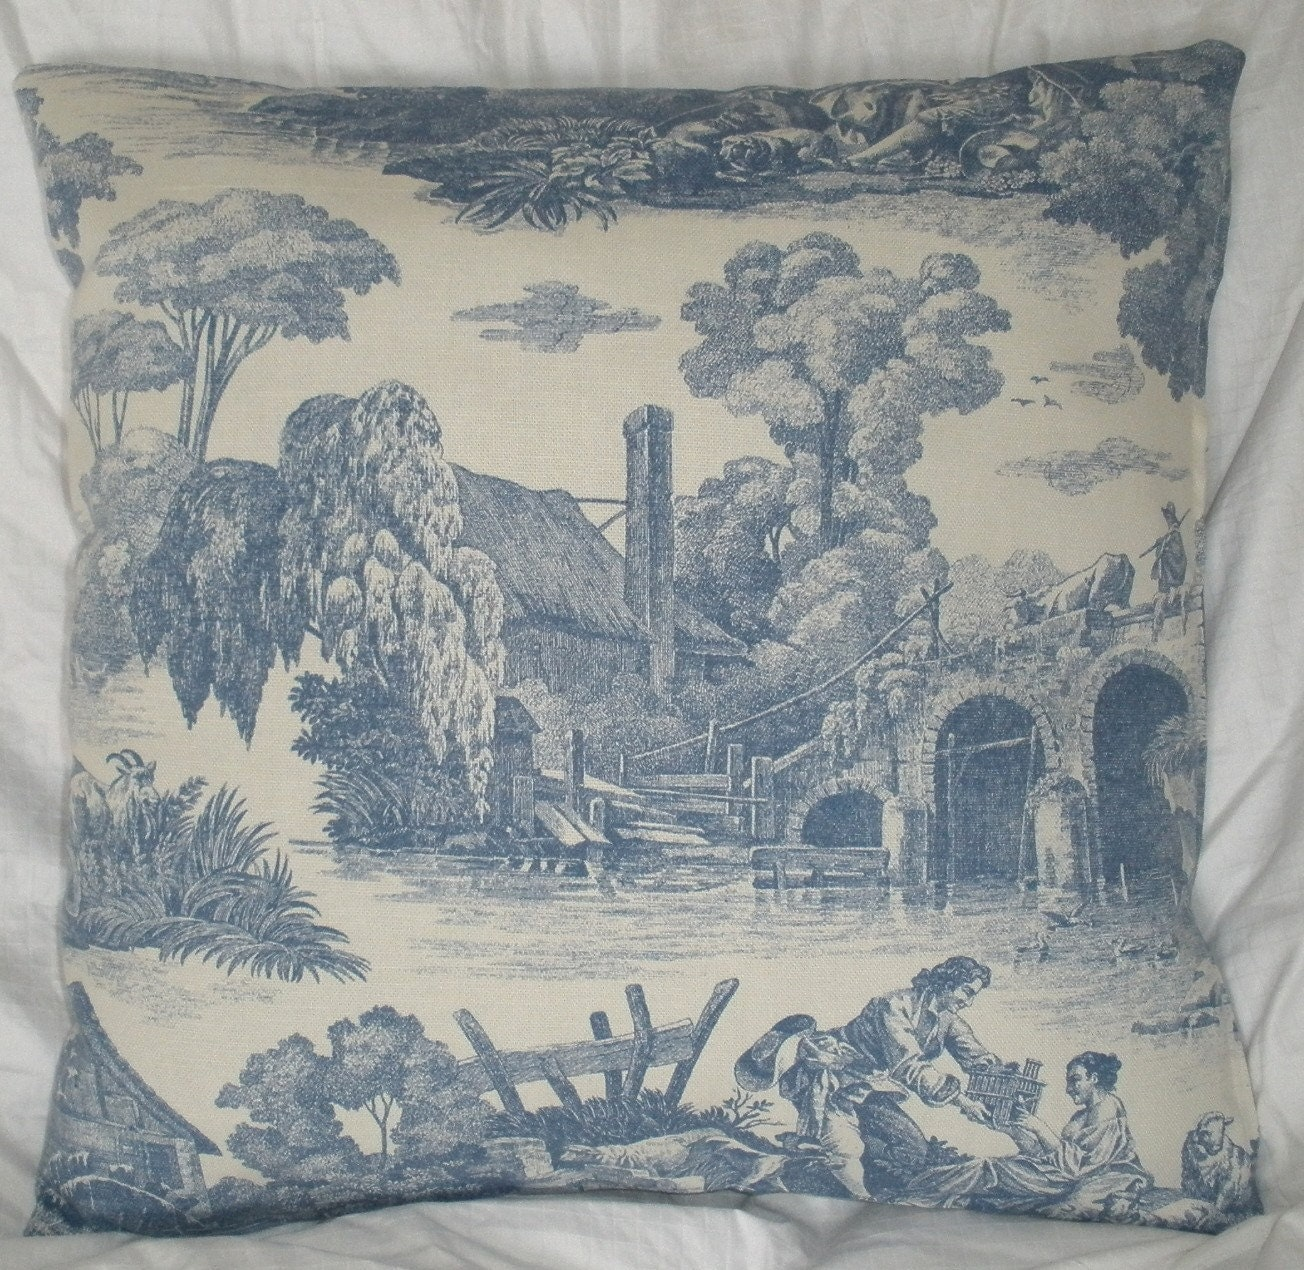 sale french toile decorative pillow cover 18x18 by homeliving. Black Bedroom Furniture Sets. Home Design Ideas